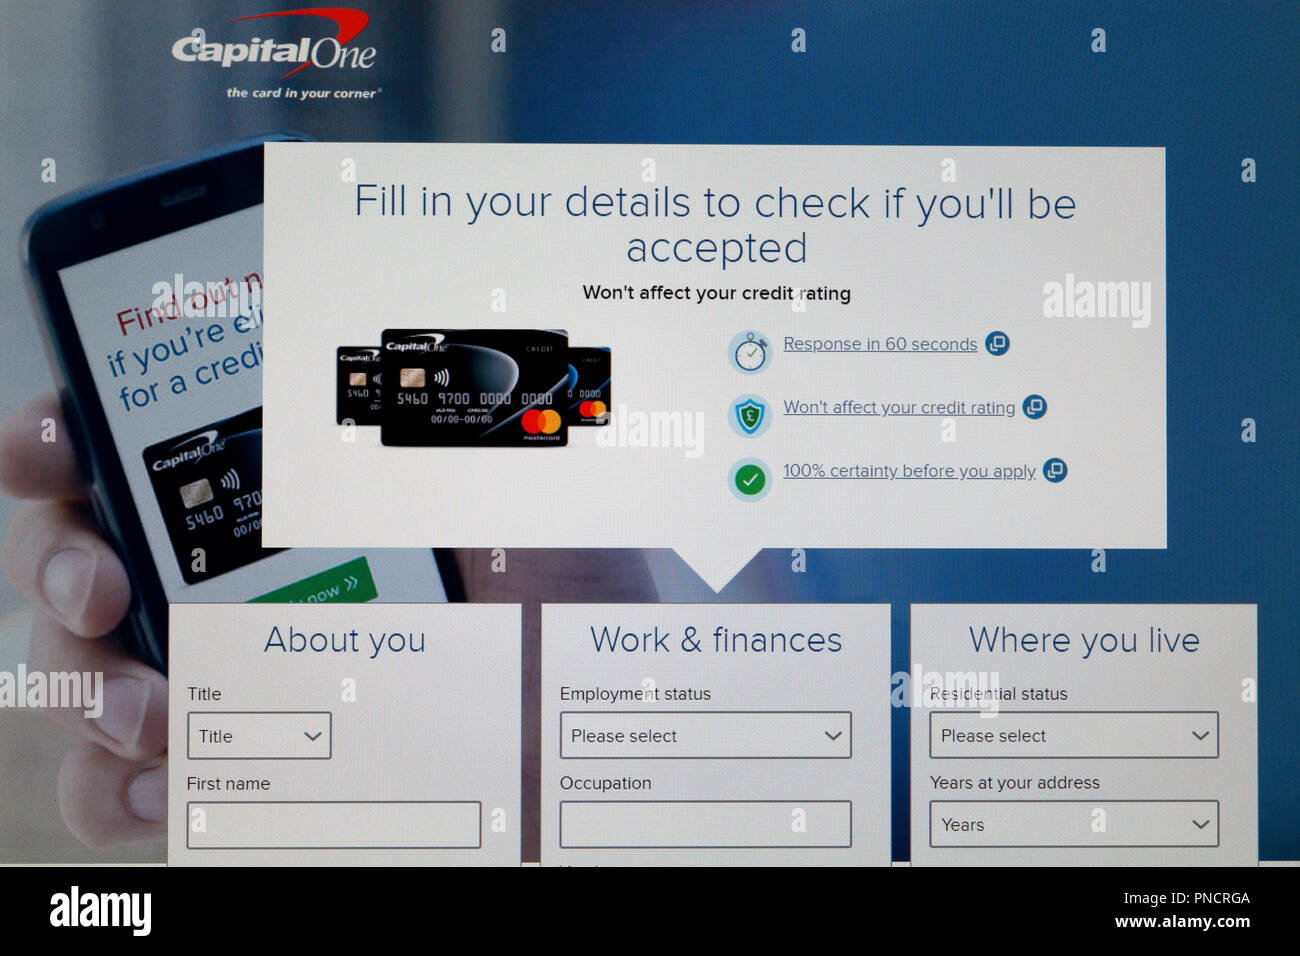 capital one credit card approval amount кредиты без залога каспий банк